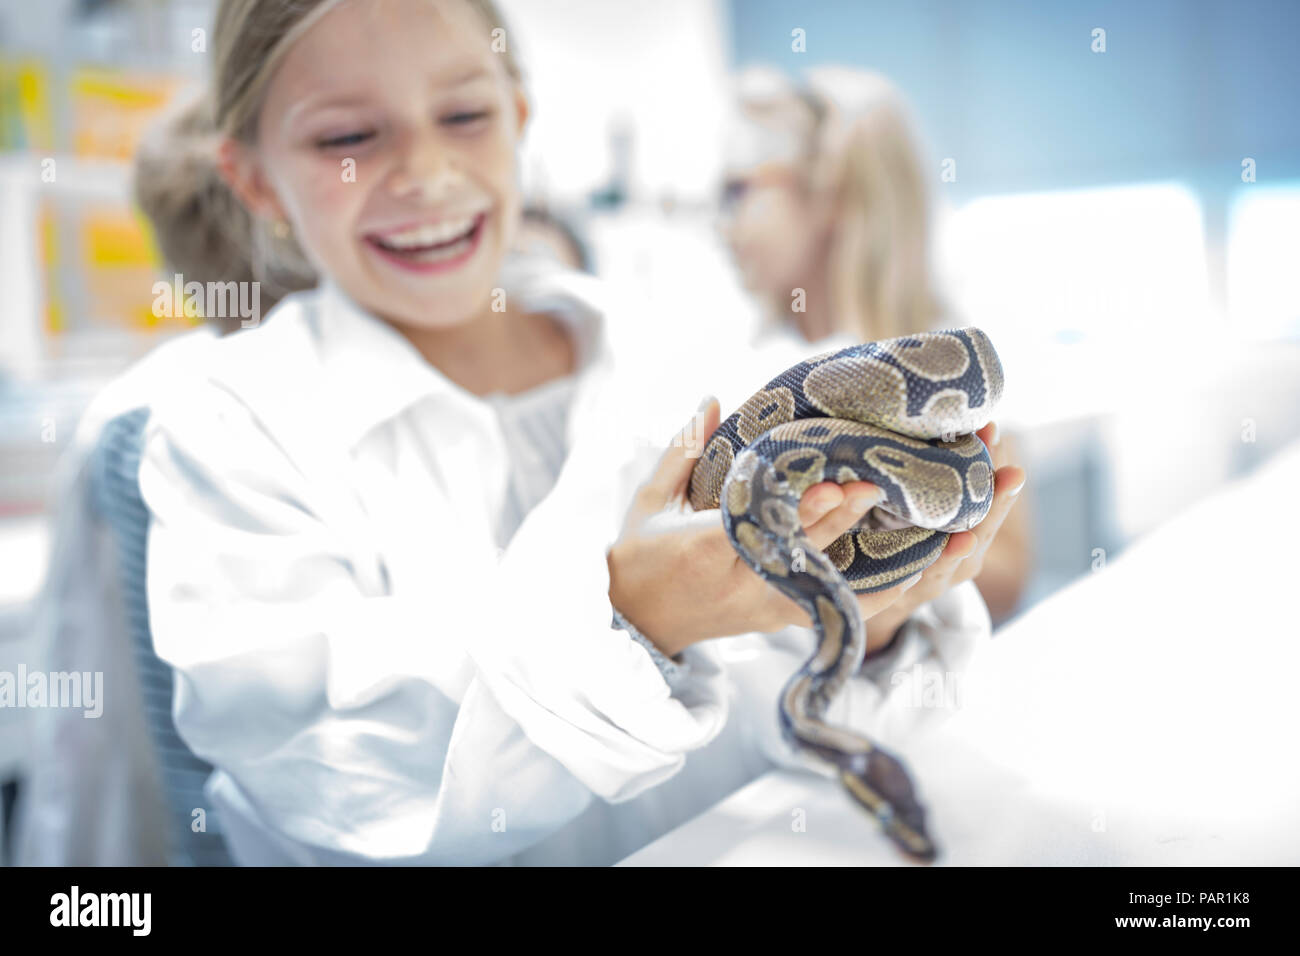 Happy schoolgirl in science class holding snake Stock Photo